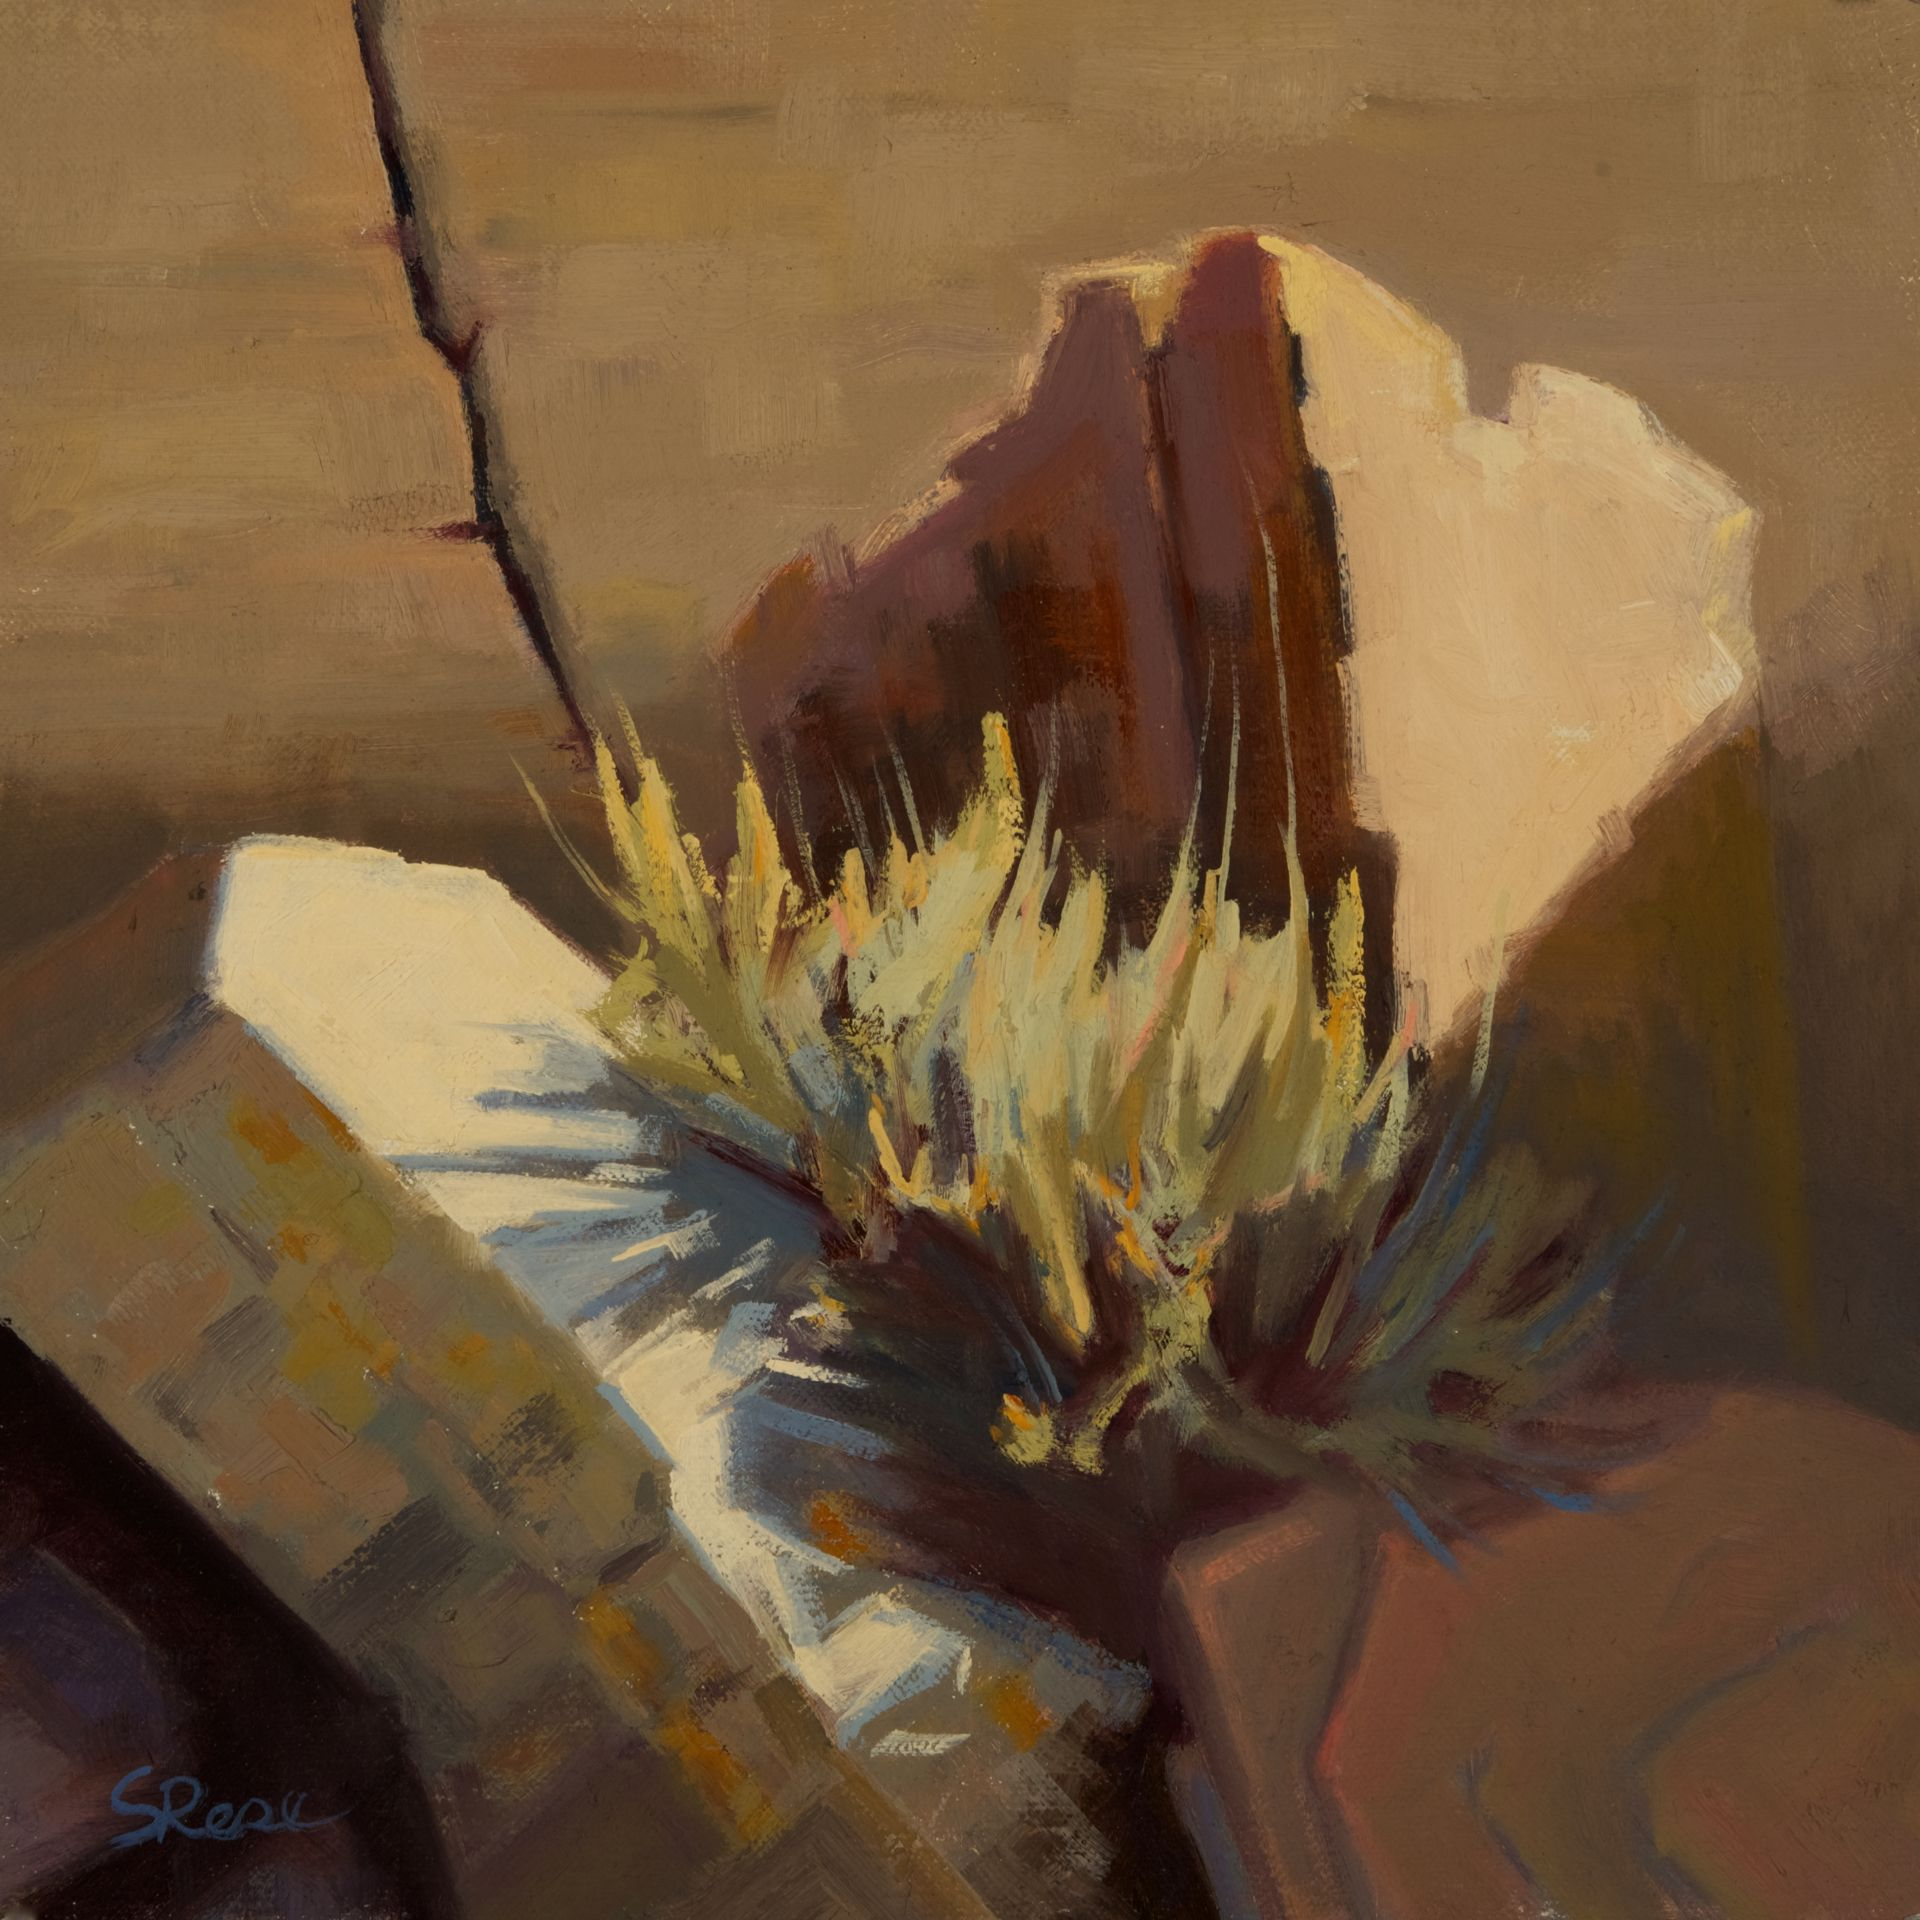 Mindful Observations, Paintings by Dorci Newman-Tremblay and Stephanie Rose